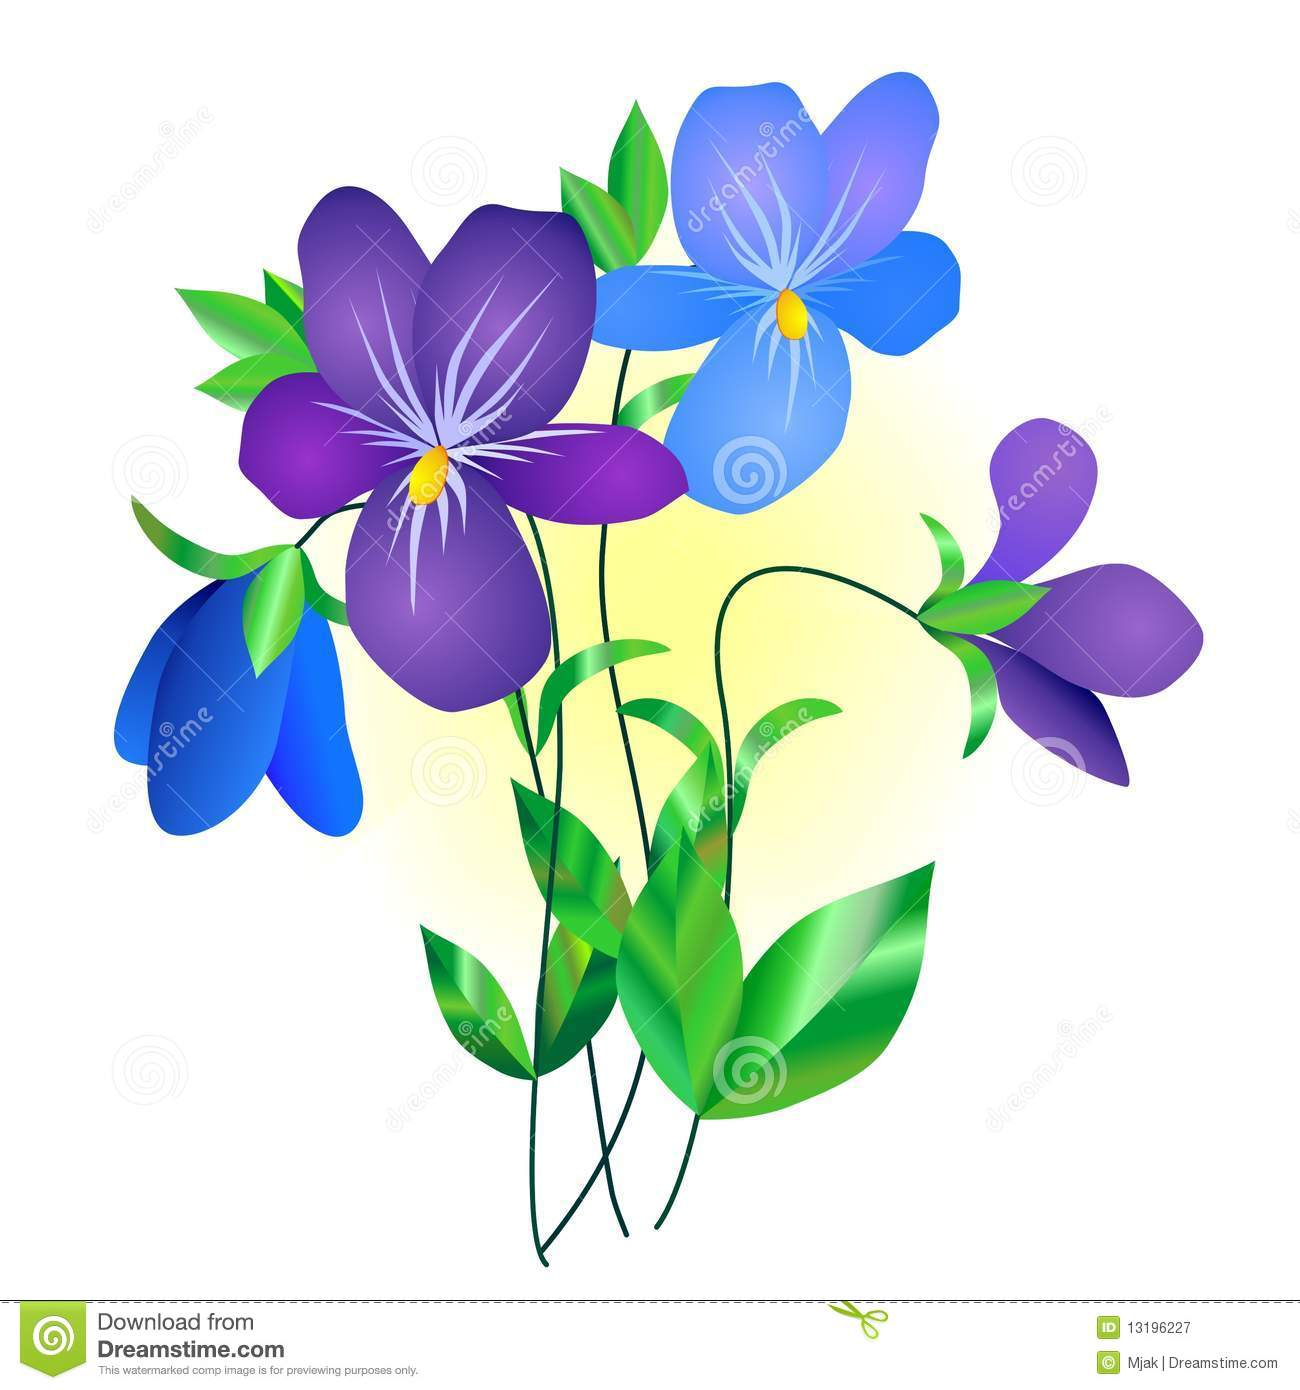 Violet Flower Royalty Free Stock Photography.